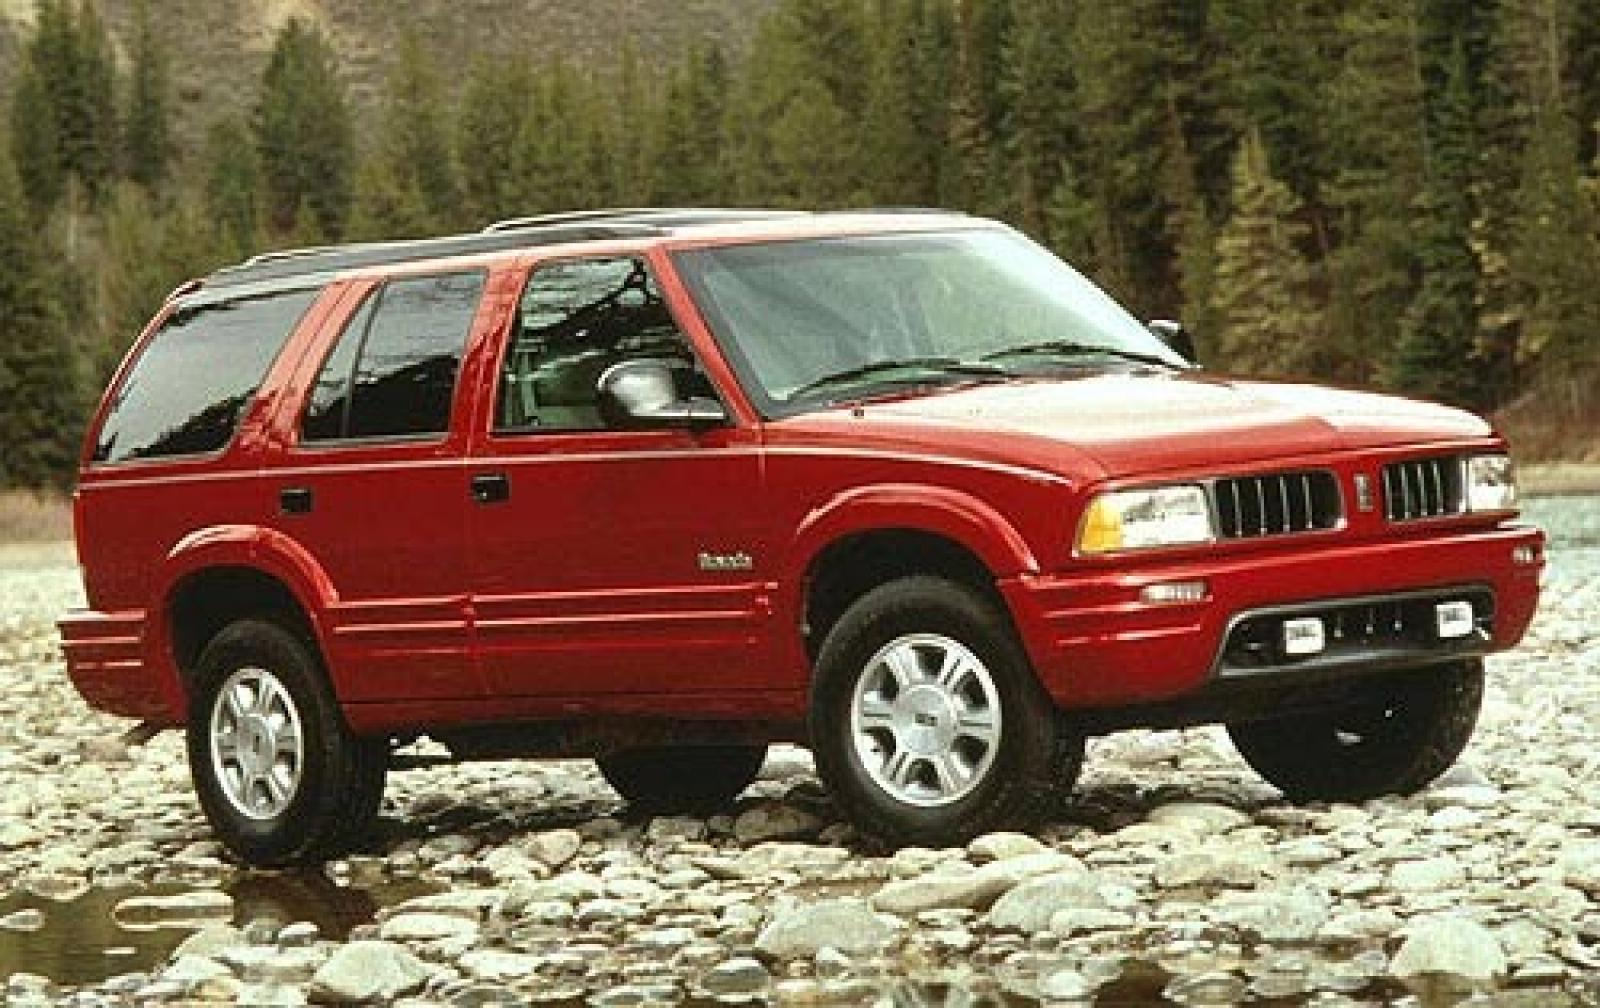 1998 Oldsmobile Bravada - Information And Photos